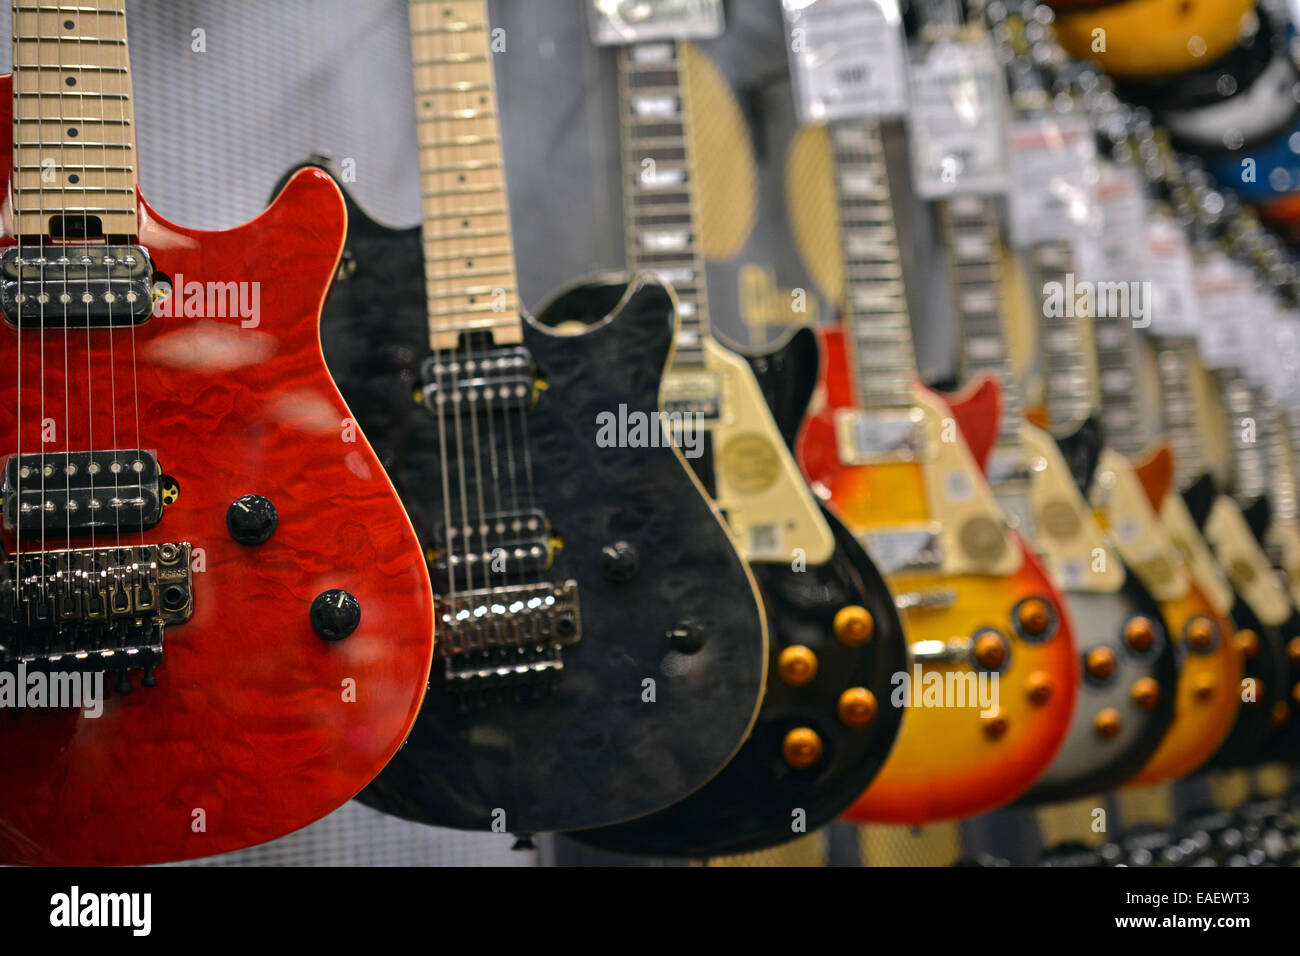 Gibson Guitars For Sale >> A Row Of Gibson Guitars For Sale At The Guitar Center On West 14th